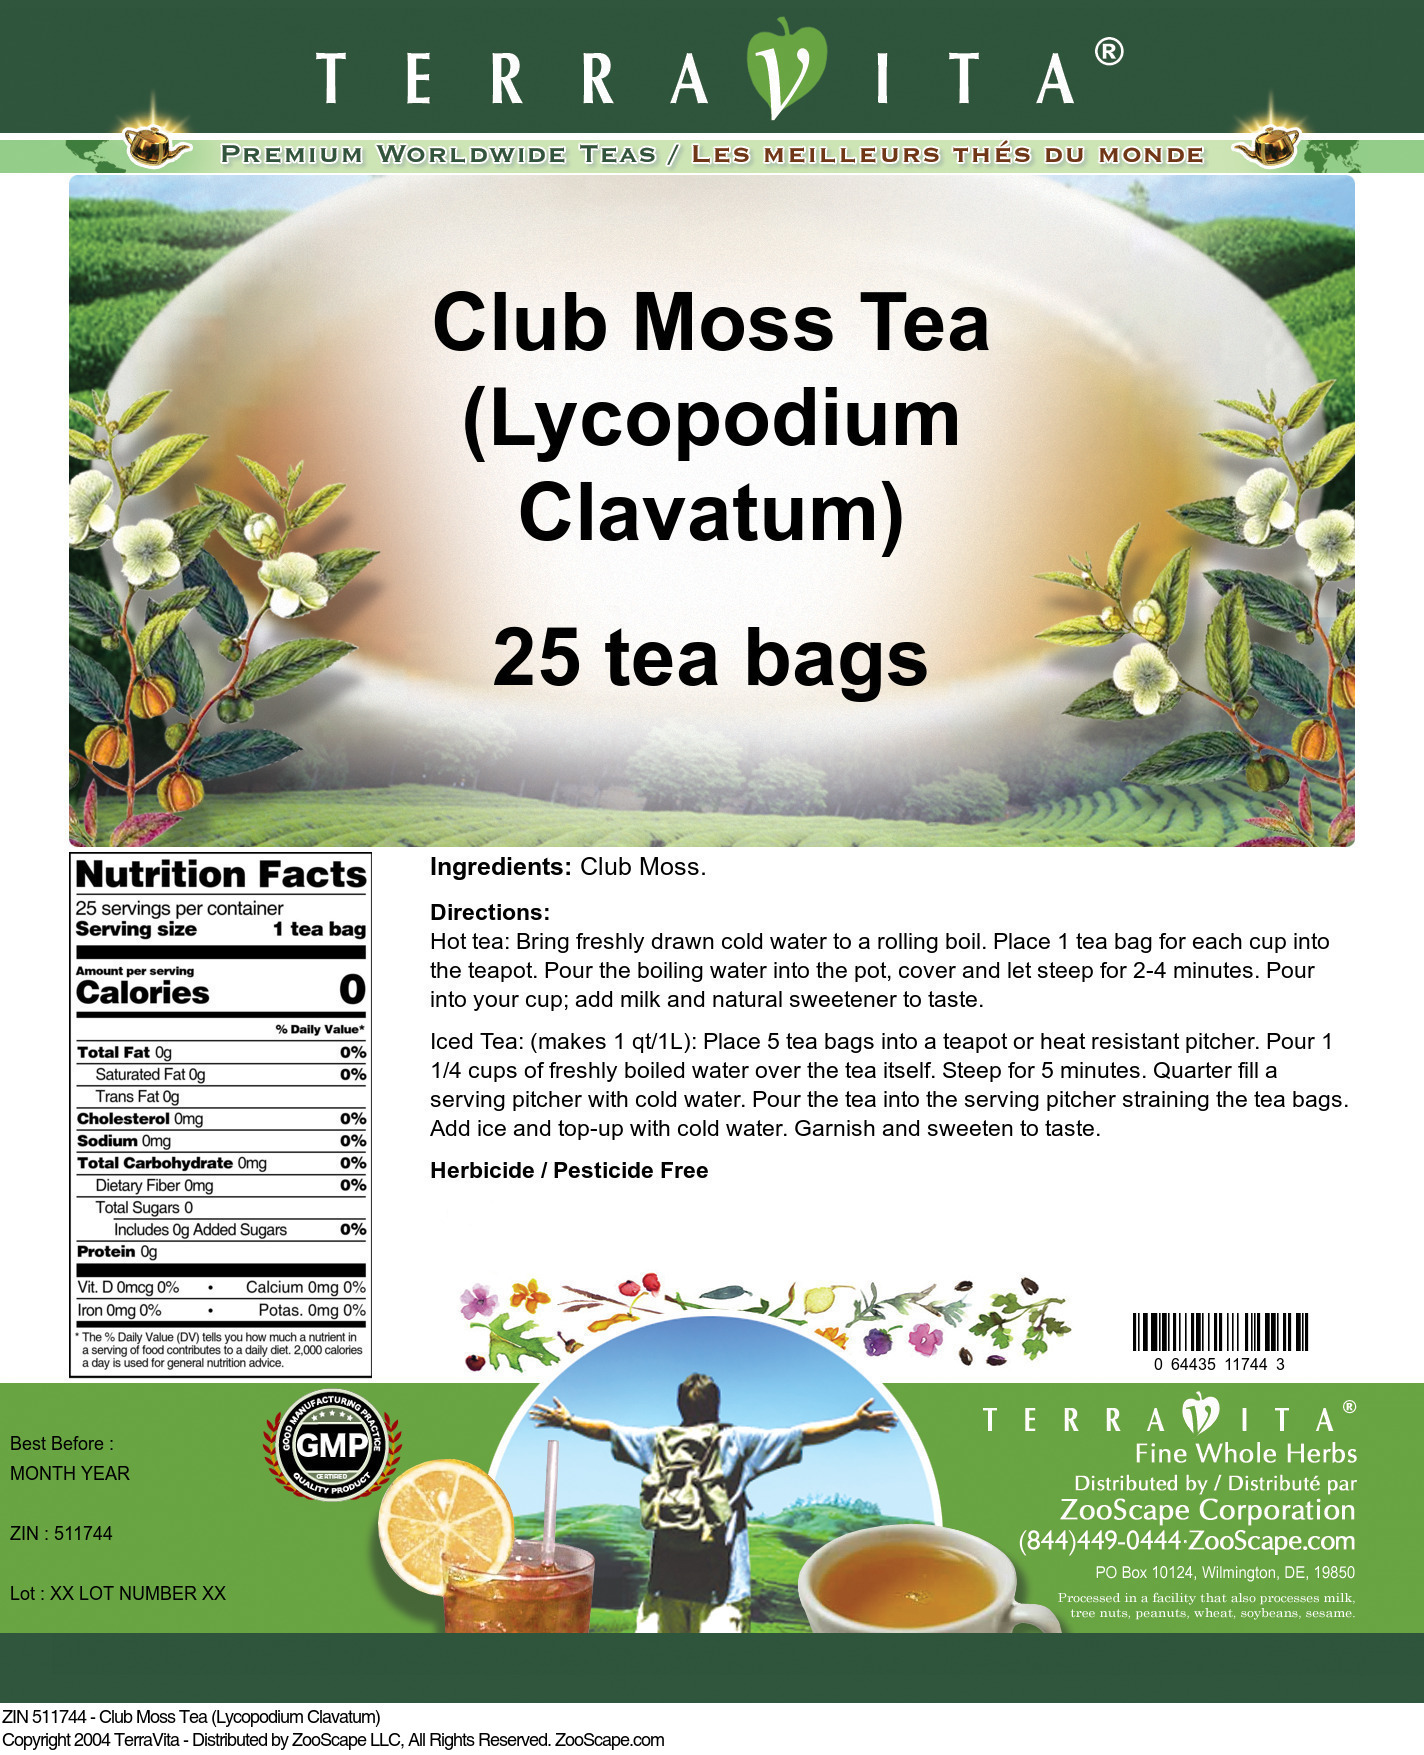 Club Moss Tea - (Lycopodium Clavatum) - Label